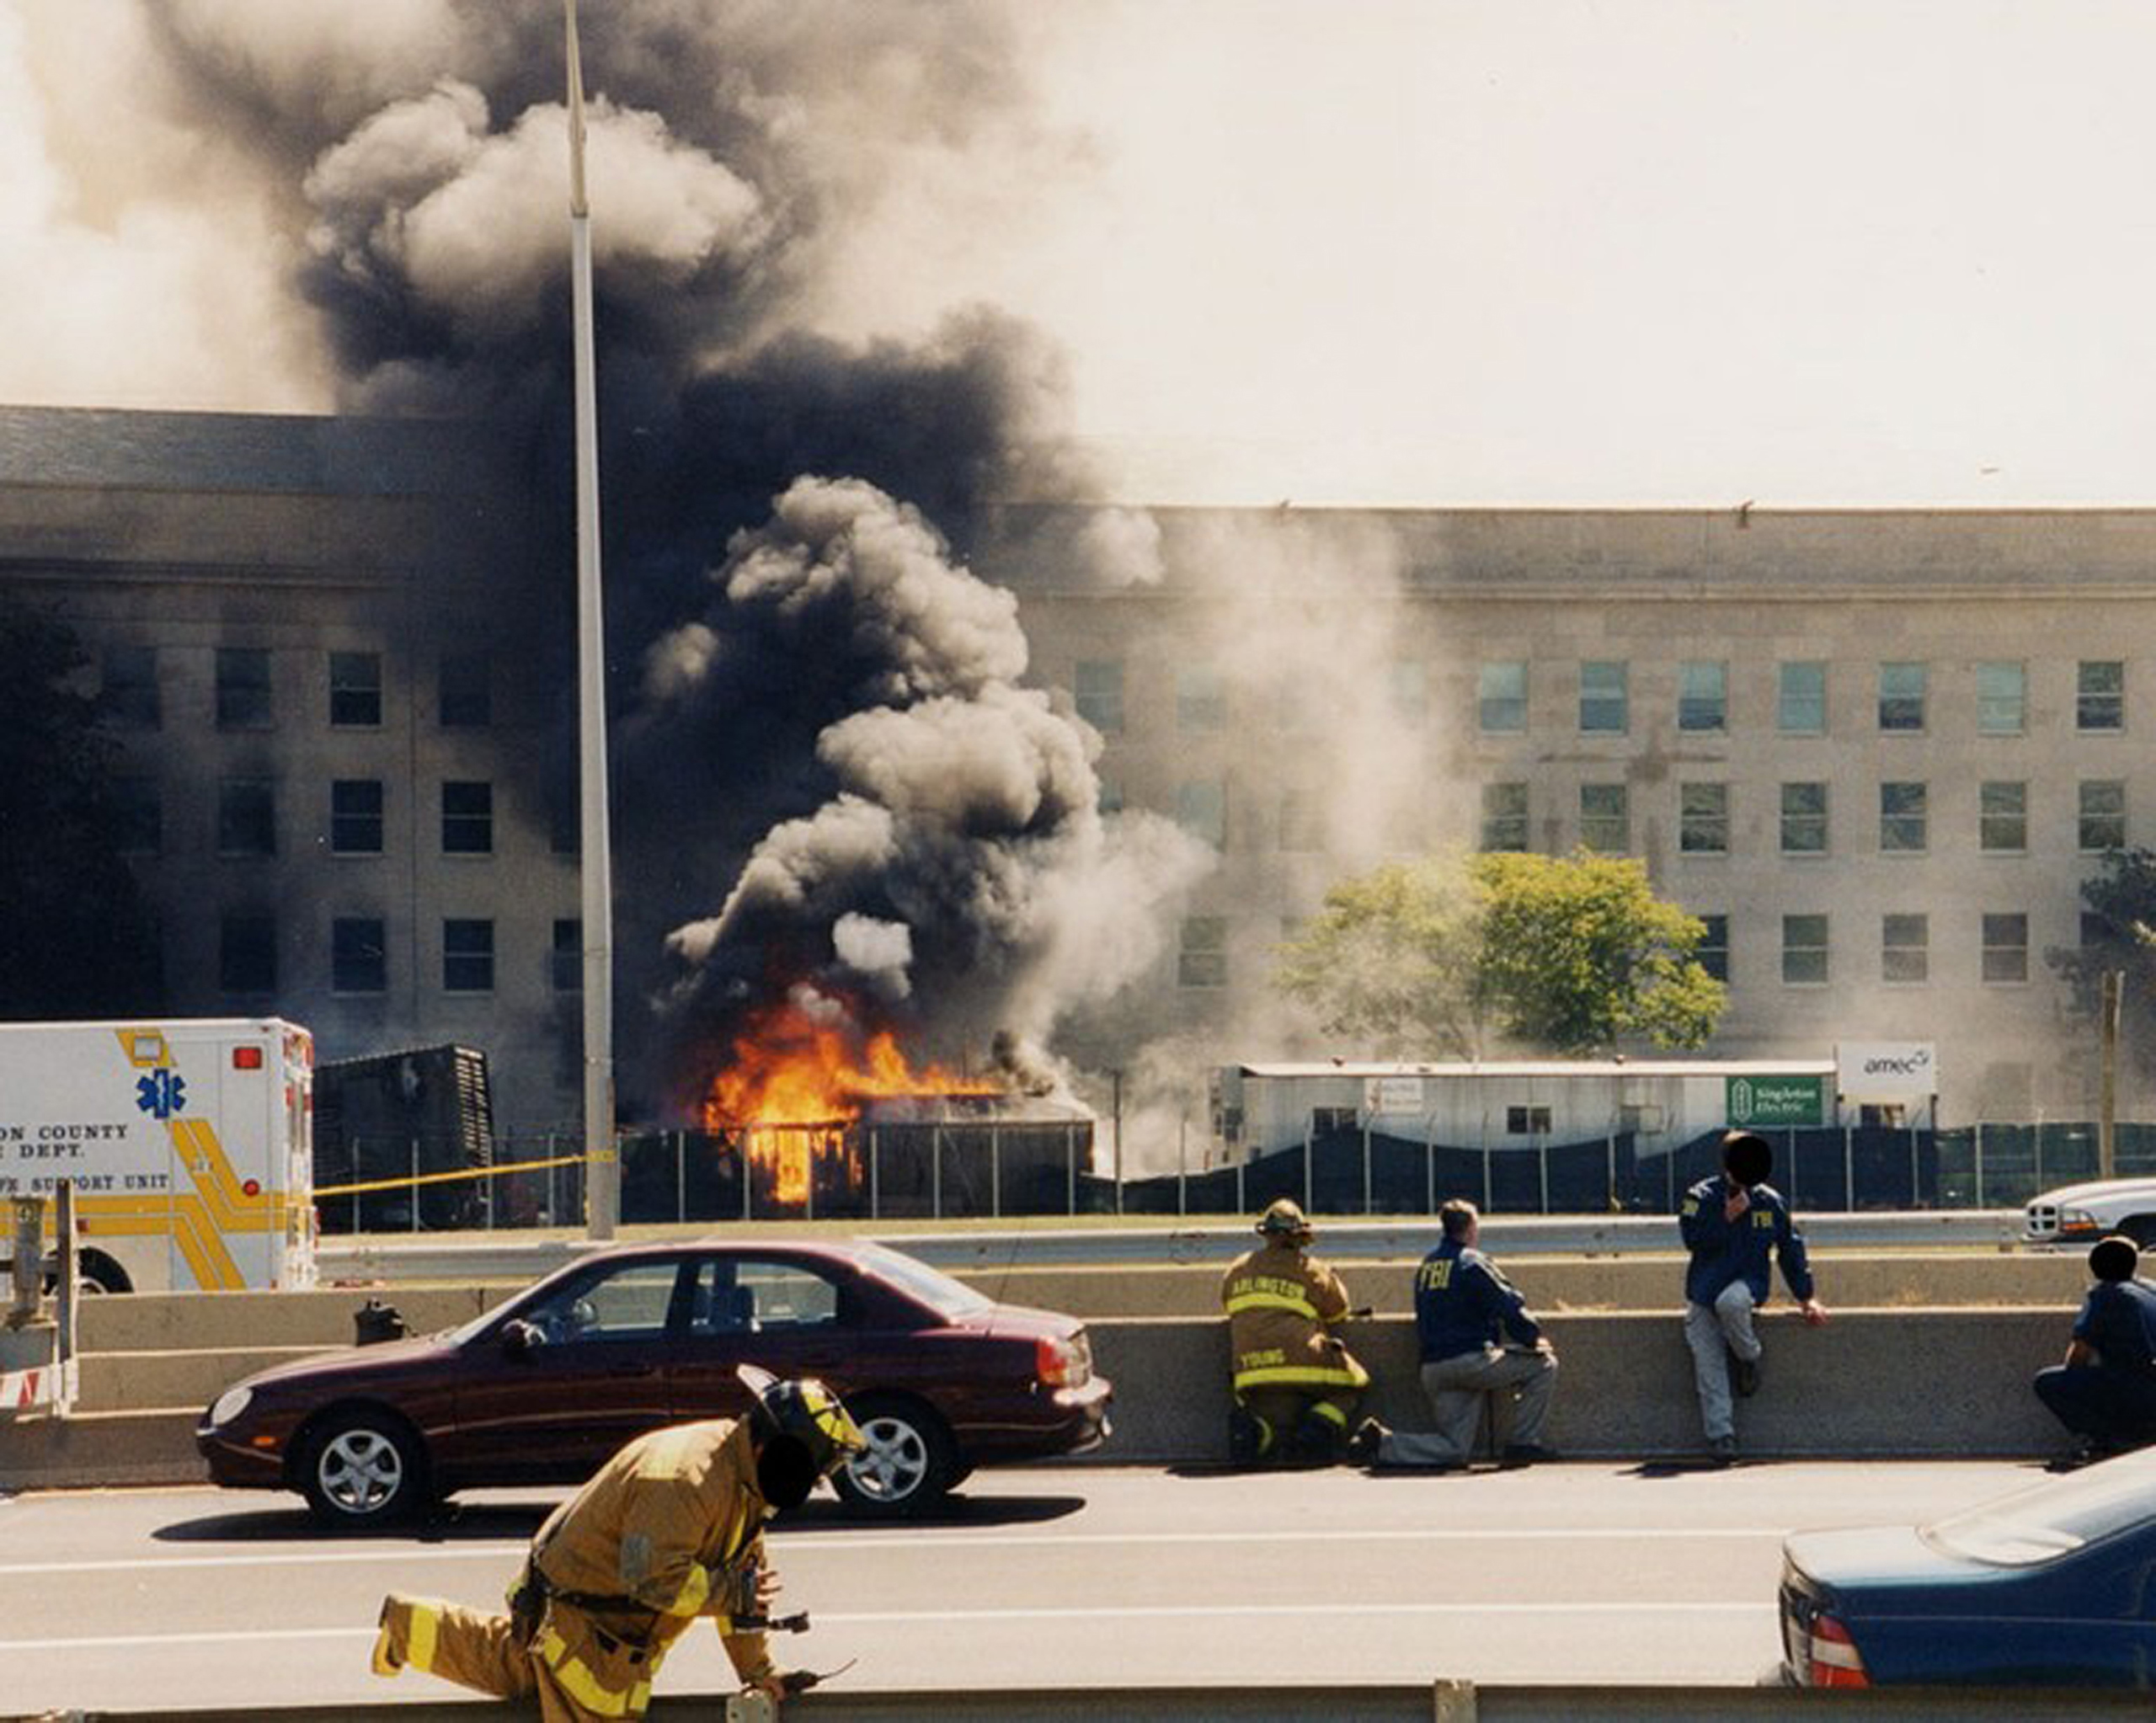 Flames and smoke billowing from a hole in the exterior wall after the hijacked American Airlines Flight 77 crashed into the Pentagon in Arlington County, Virginia, on Sept. 11, 2001.